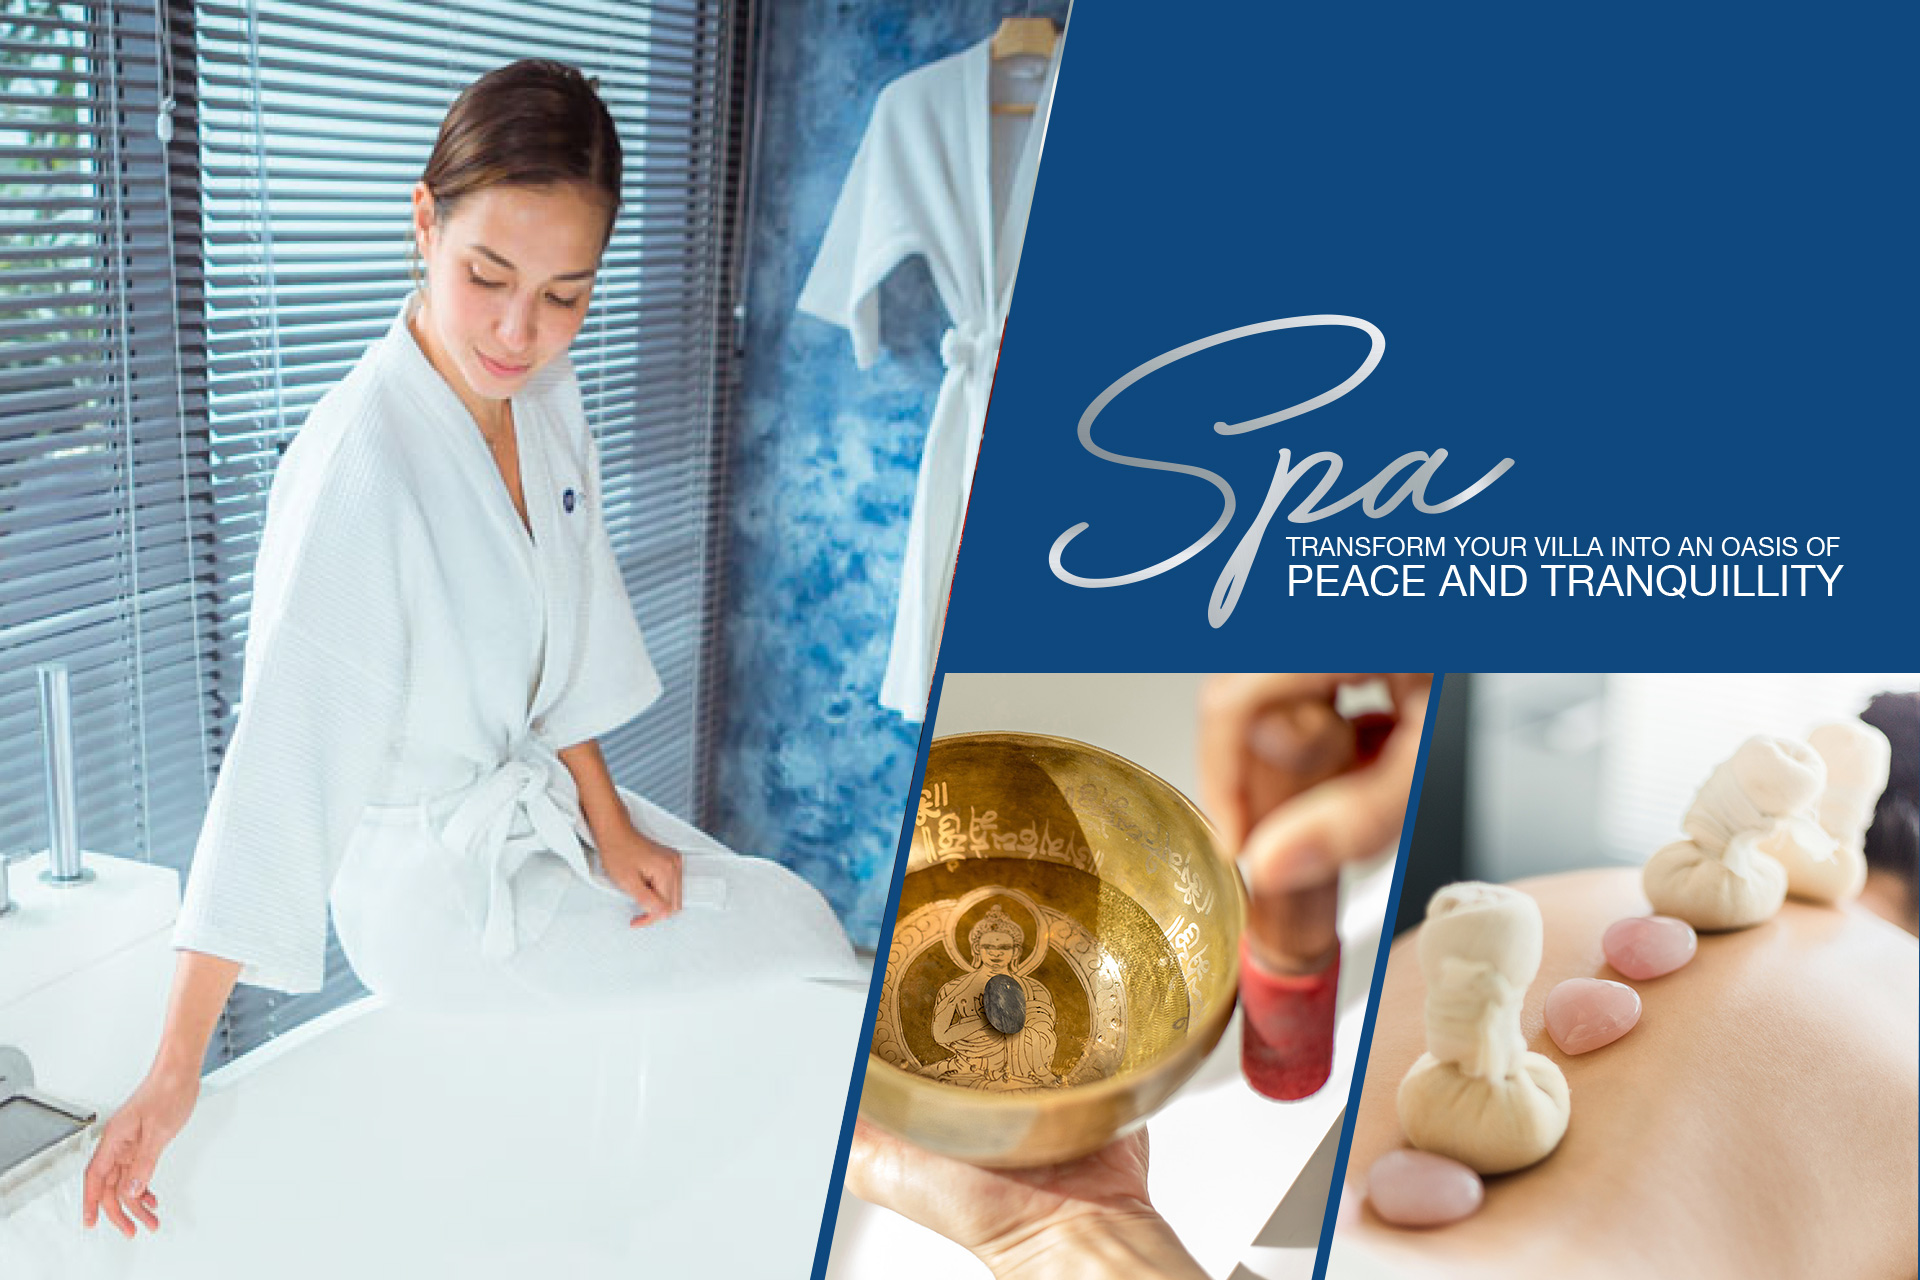 In-villa spa peace and tranquillity